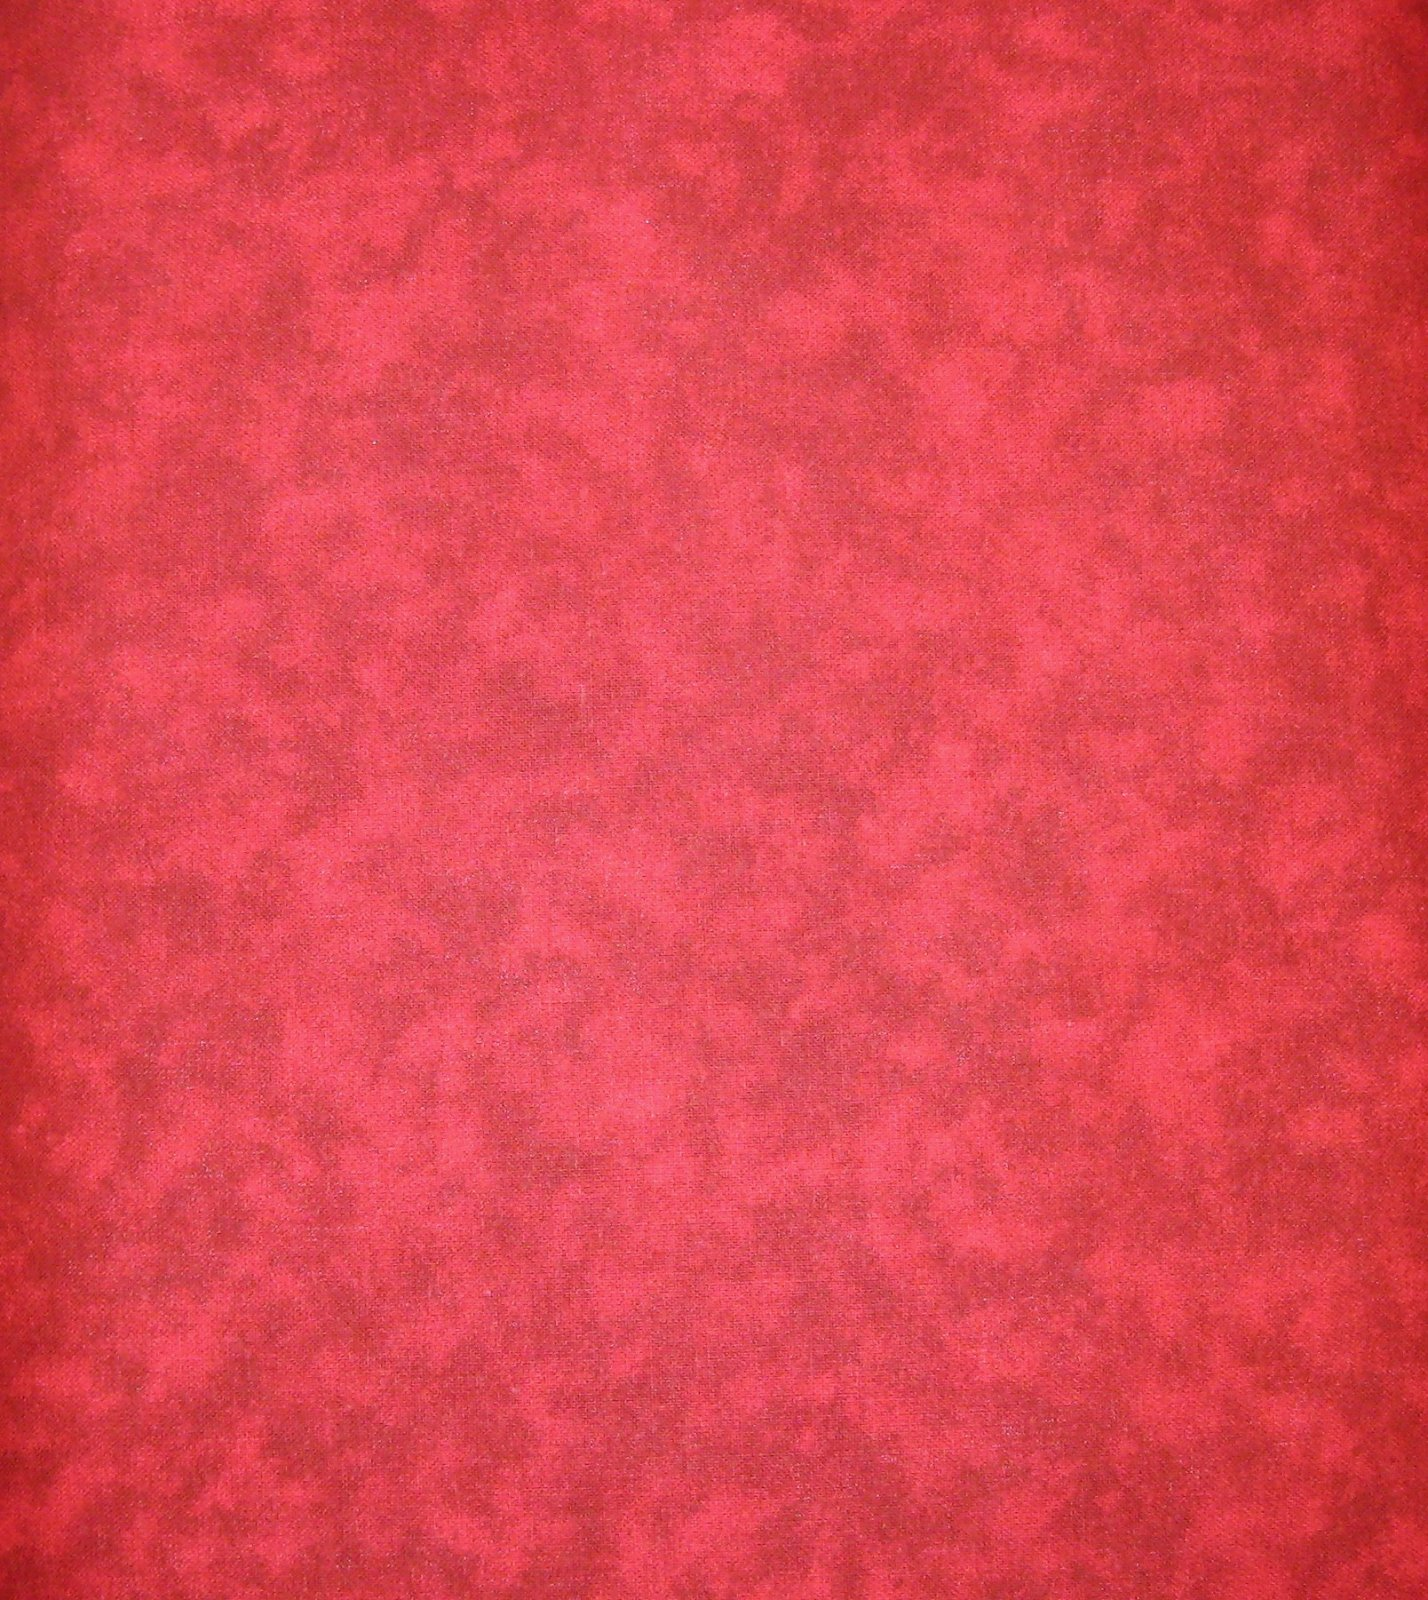 Quilt 108 Backing Suede Texture 44395-1513 Red